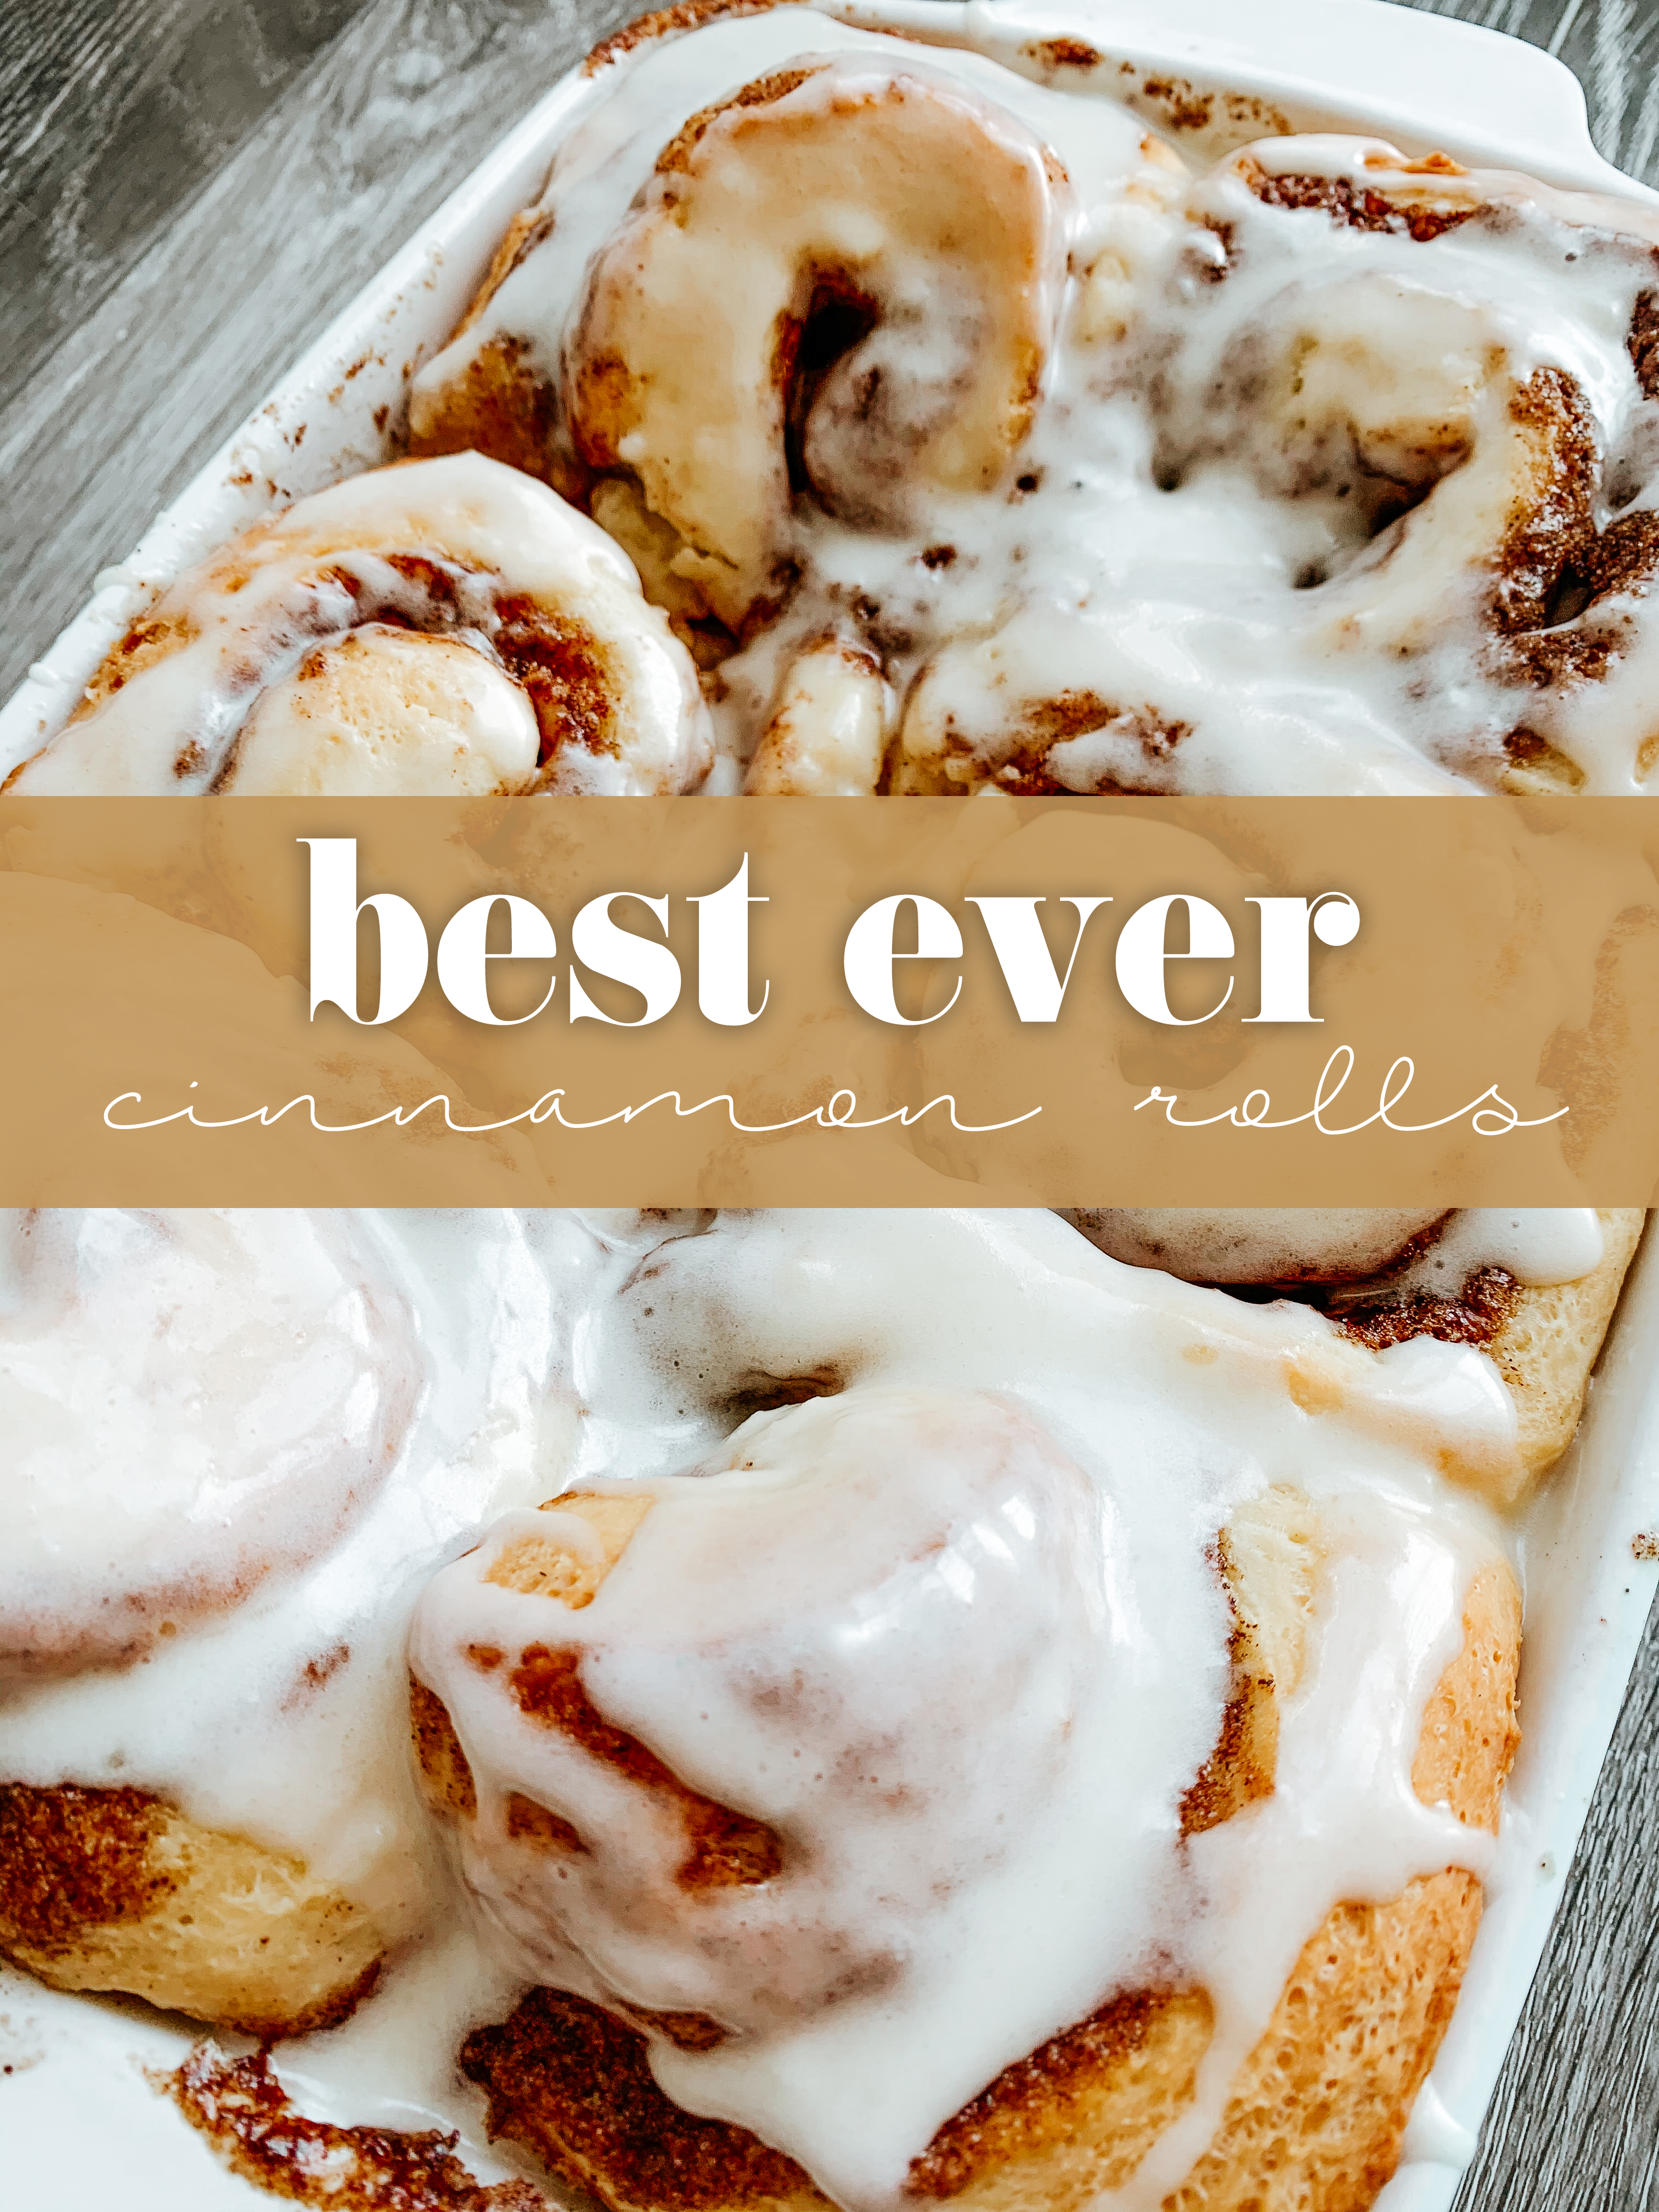 Best Ever Cinnamon Rolls Recipe